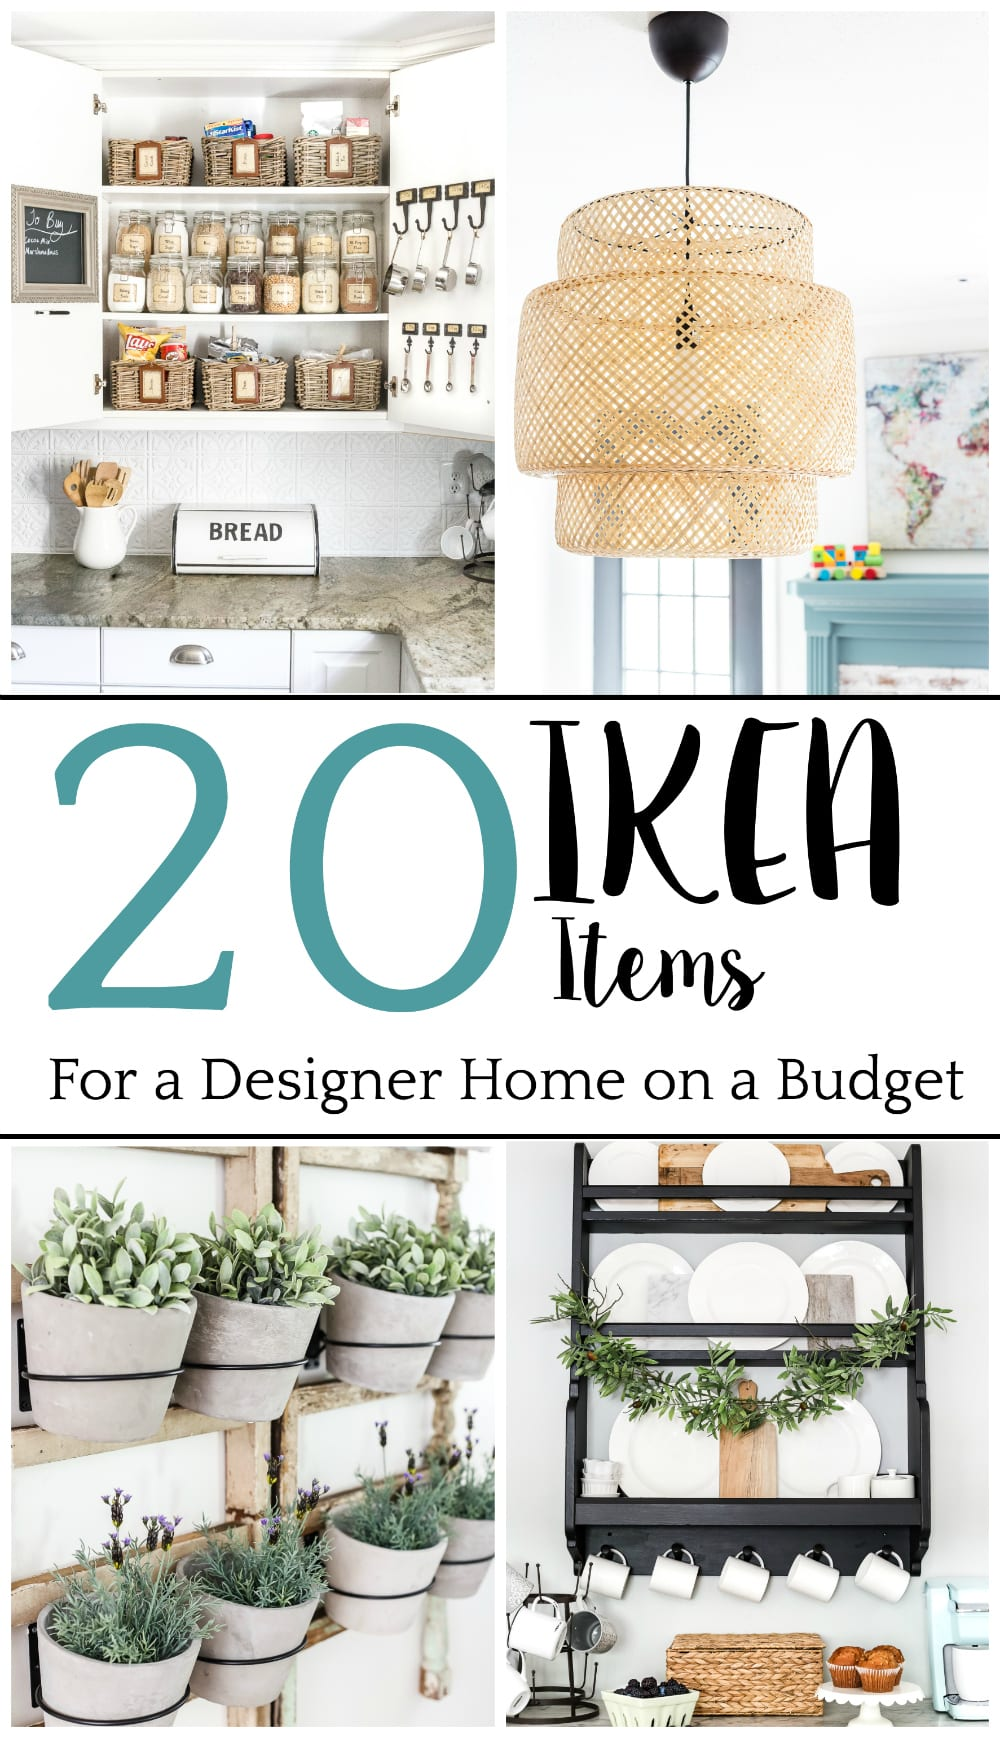 decor and design 38 best farmhouse kitchen decor and design ideas for 2018 The top 20 IKEA items that look high-end for a low price to decorate